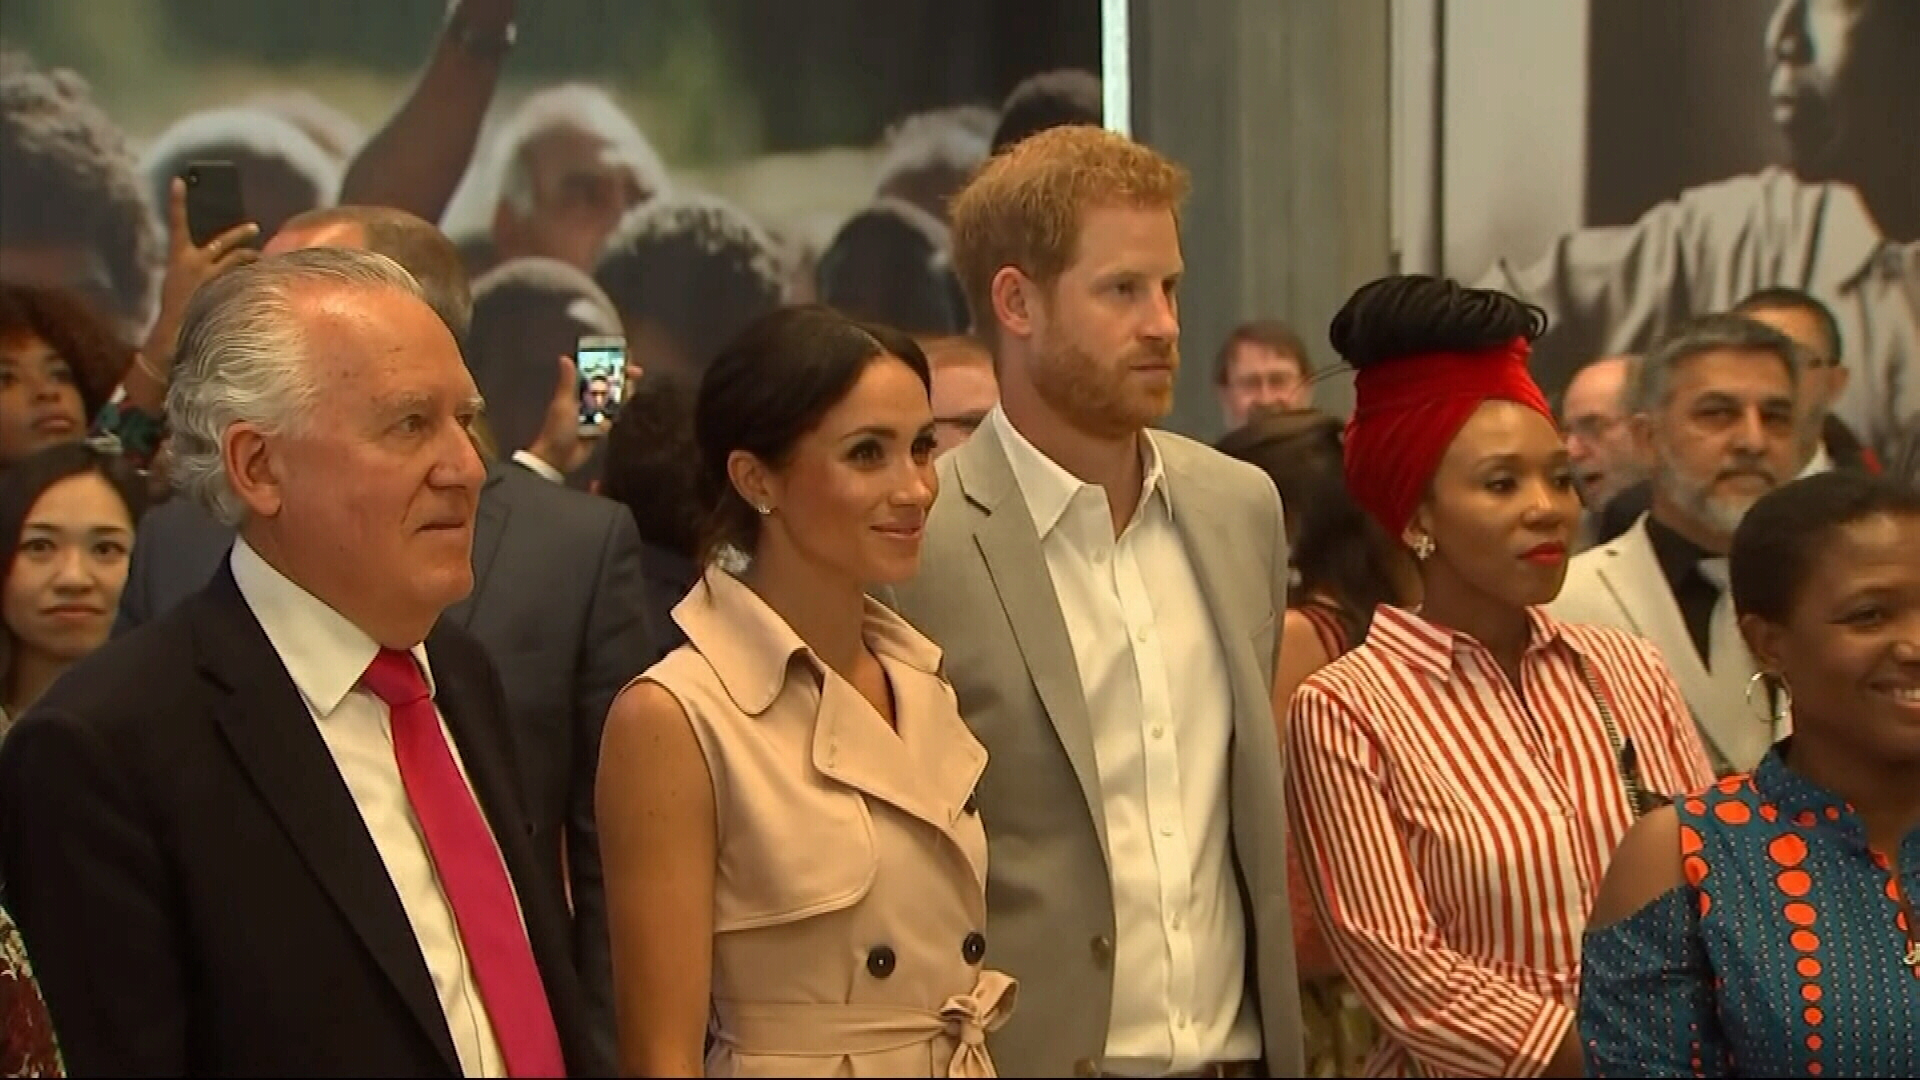 Duke and Duchess of Sussex visit Nelson Mandela tribute